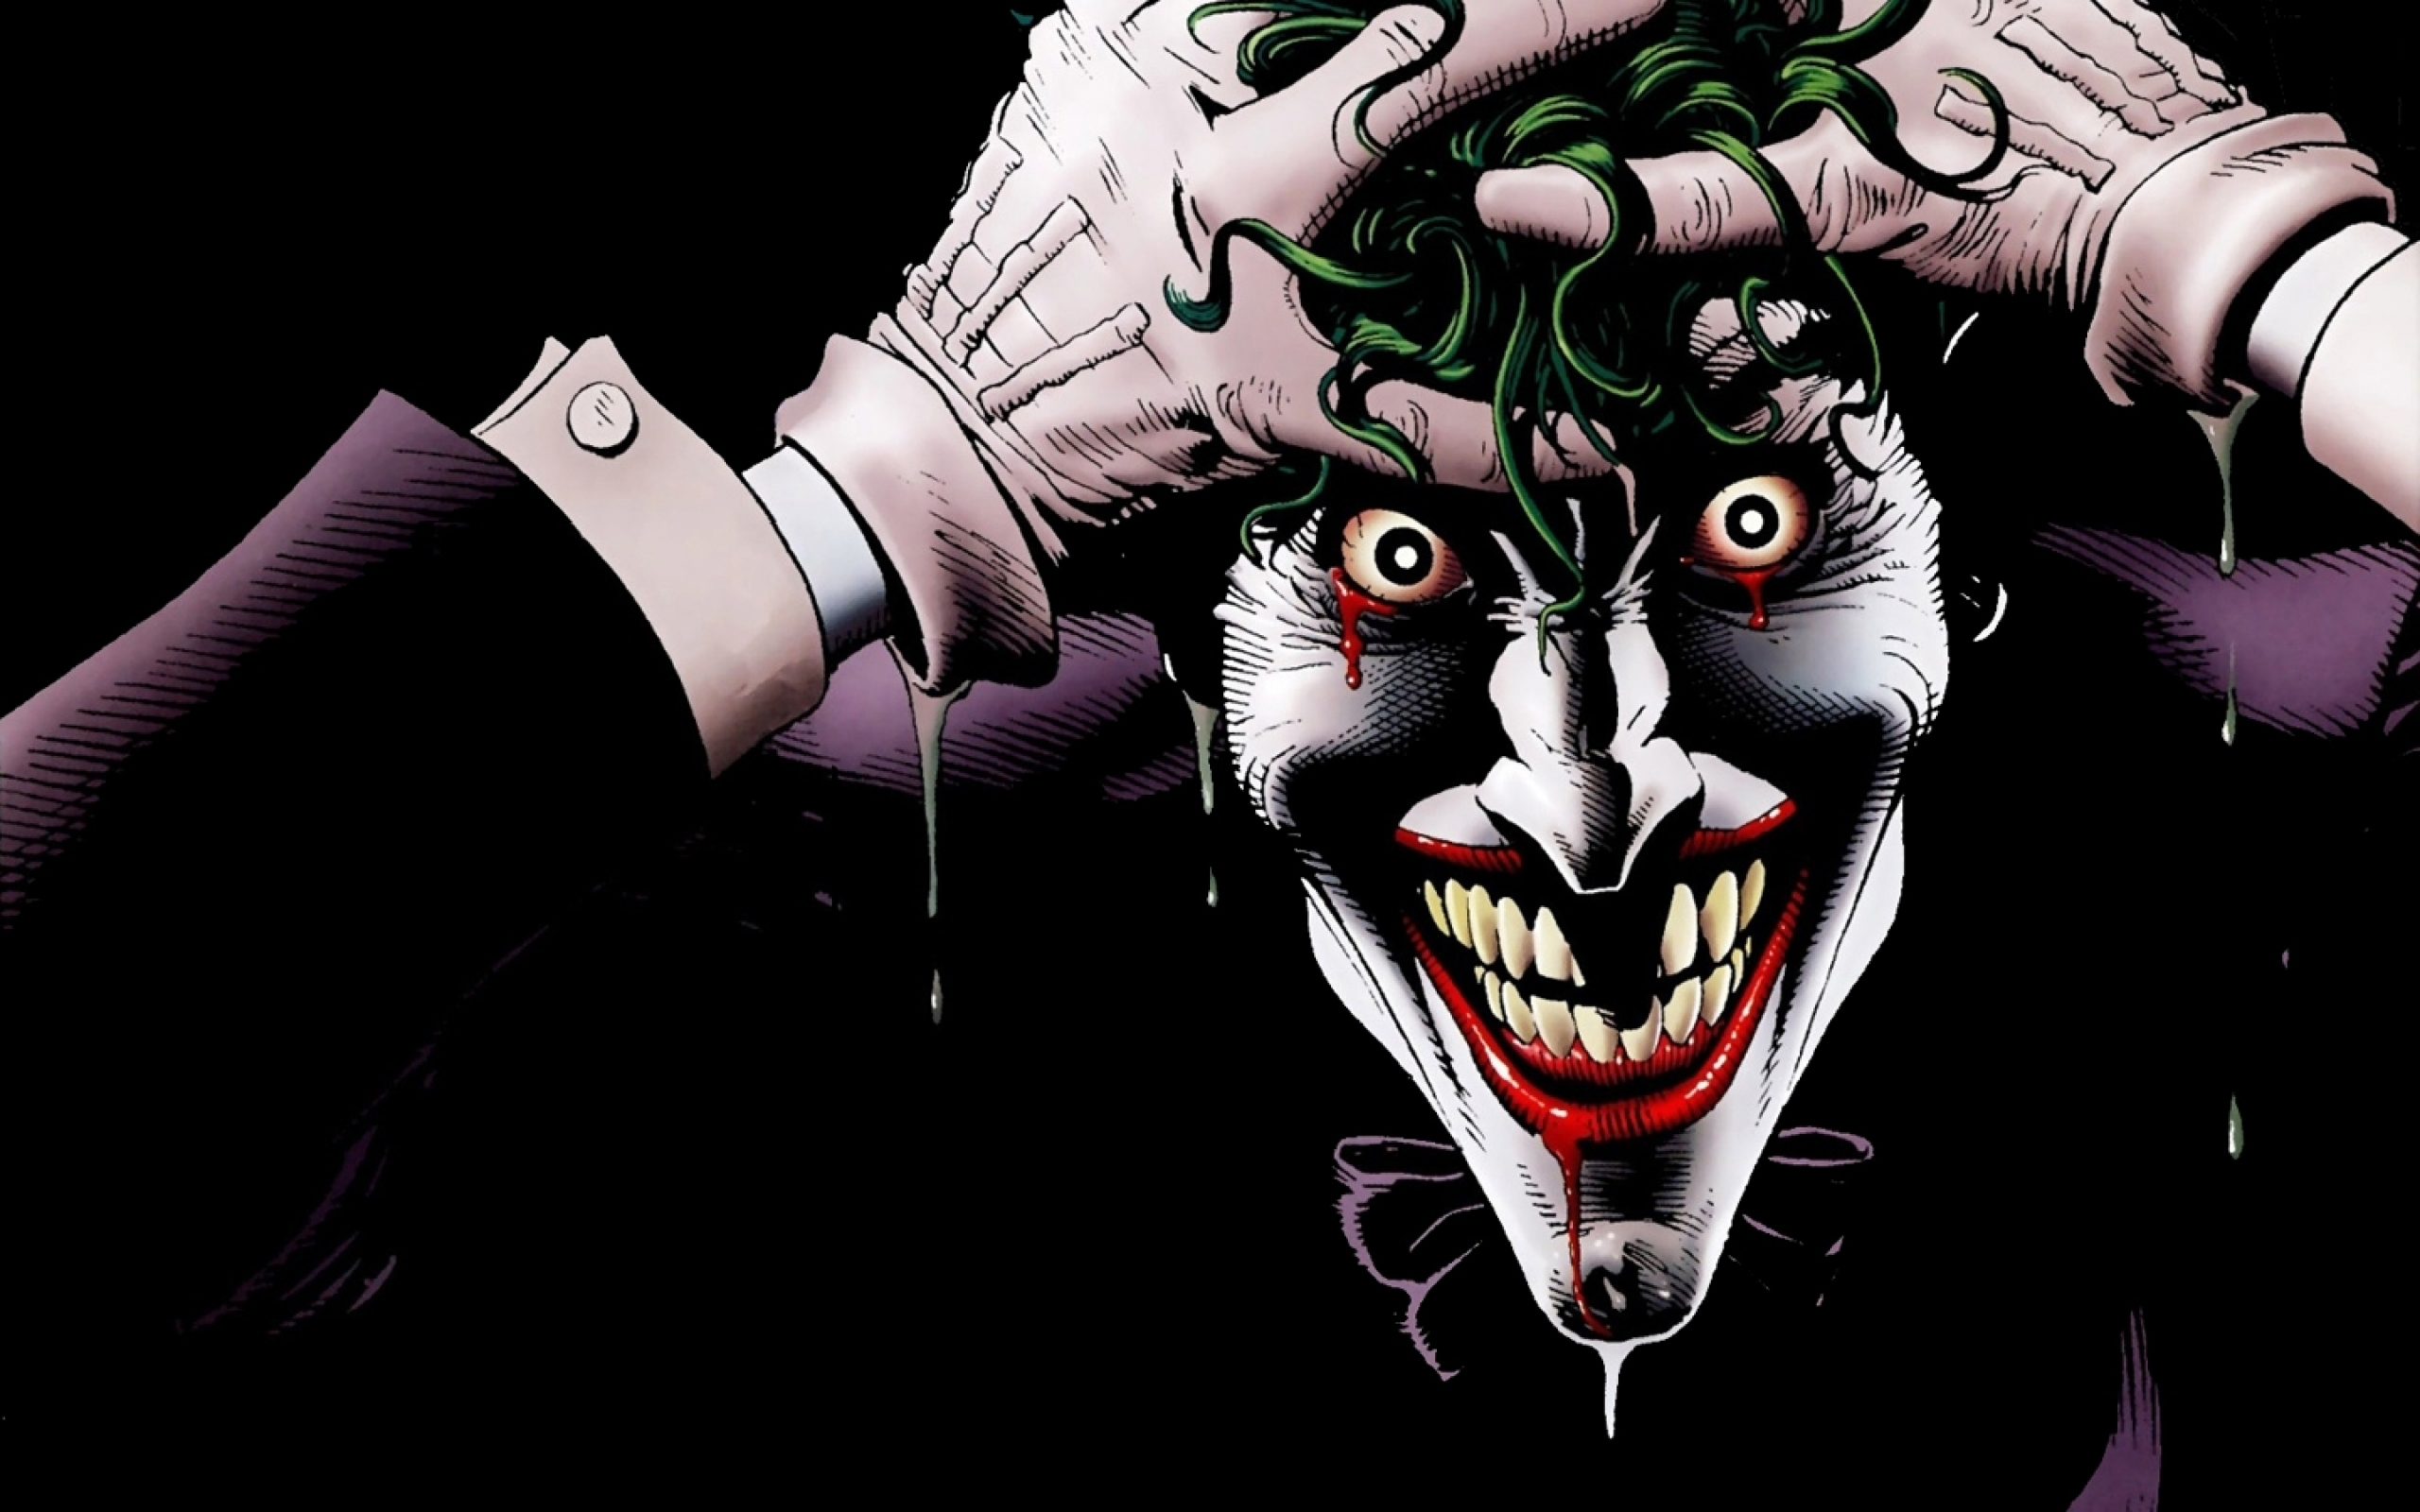 dc comics the joker 1440x900 wallpaper Art HD Wallpaper download 2560x1600